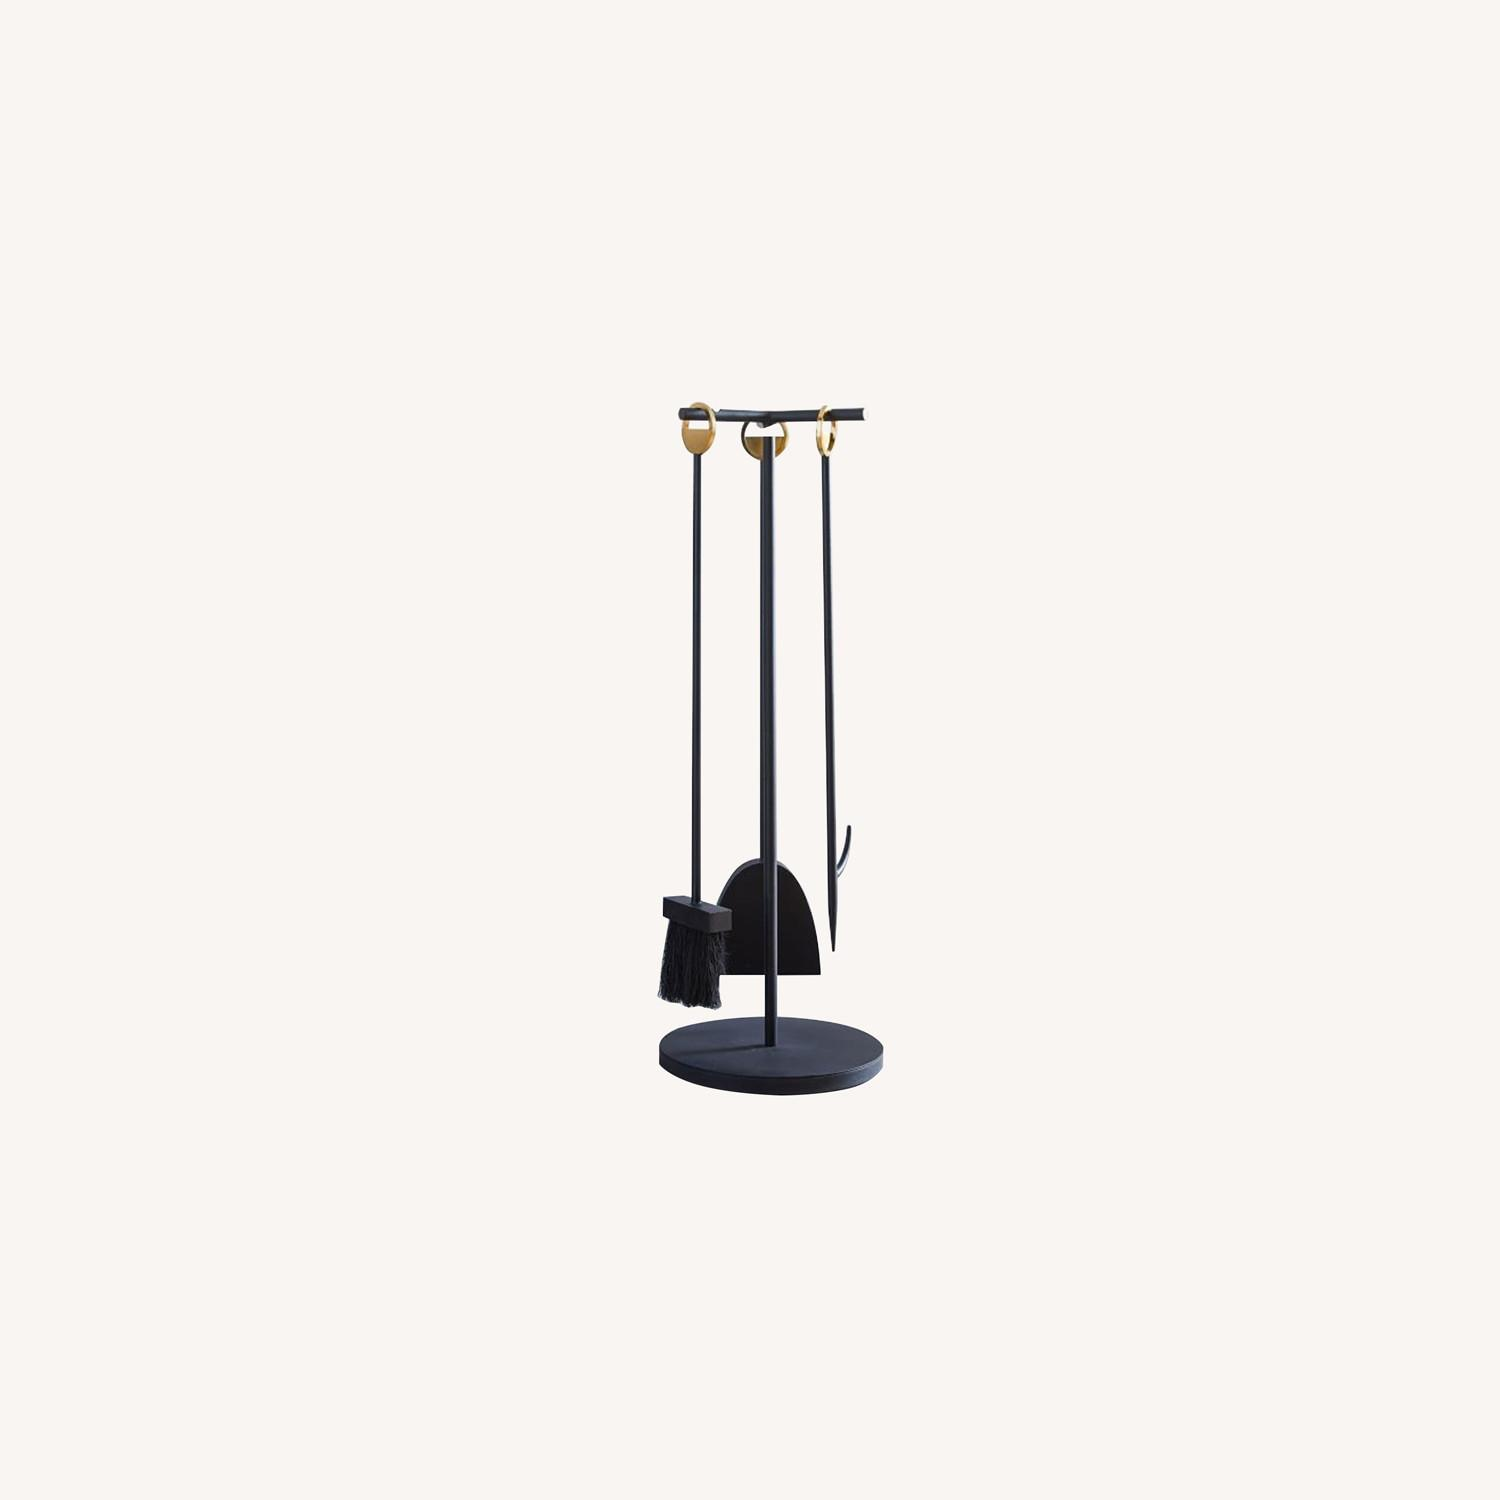 West Elm Cut Out Fireplace Tools - image-0